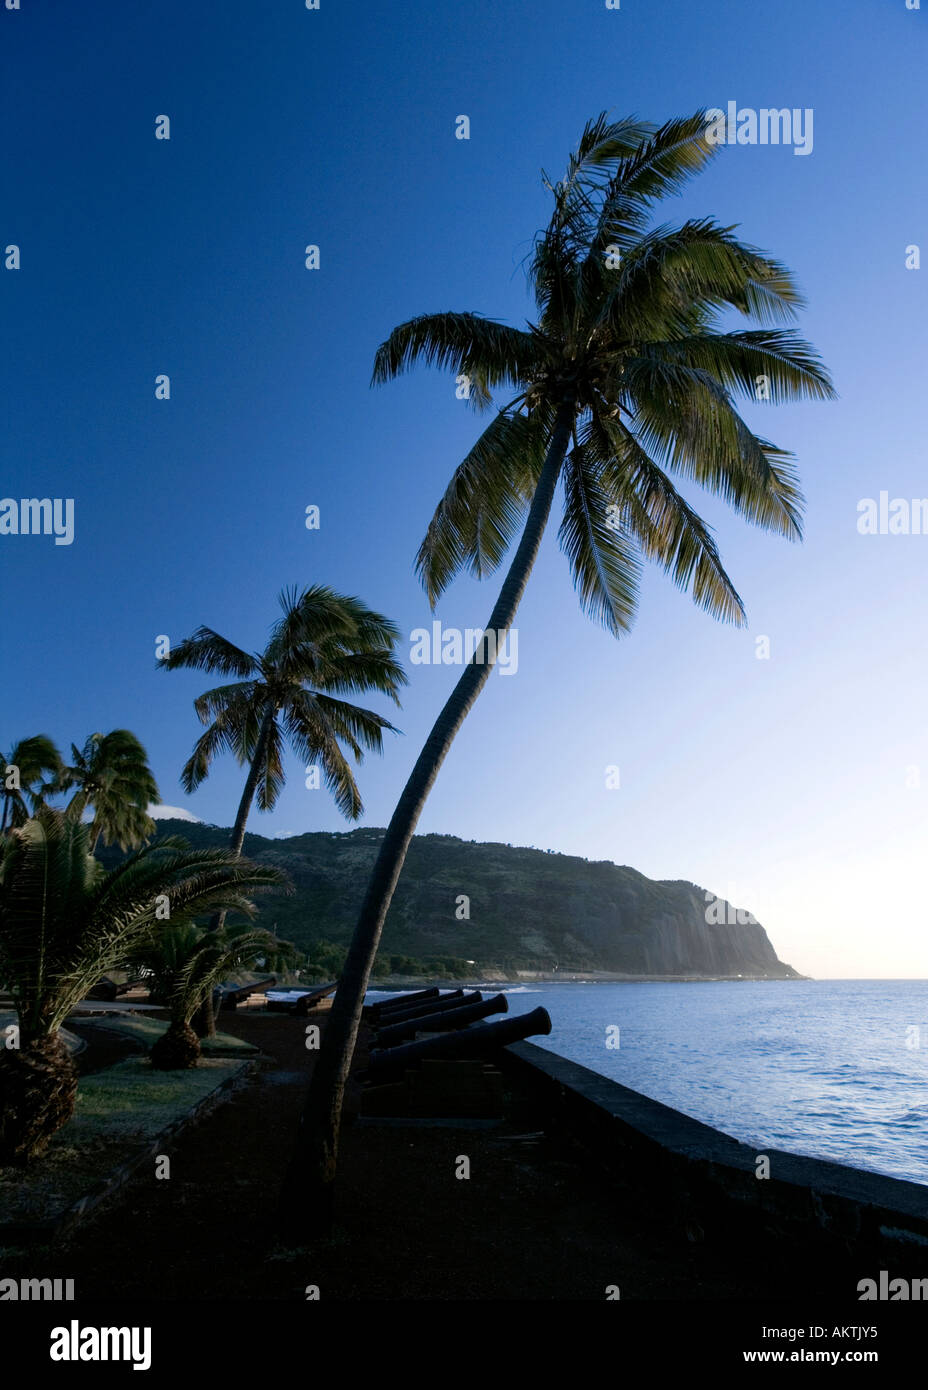 Tropical contrasts - Cannons and palm trees - Saint-Denis, Réunion Stock Photo